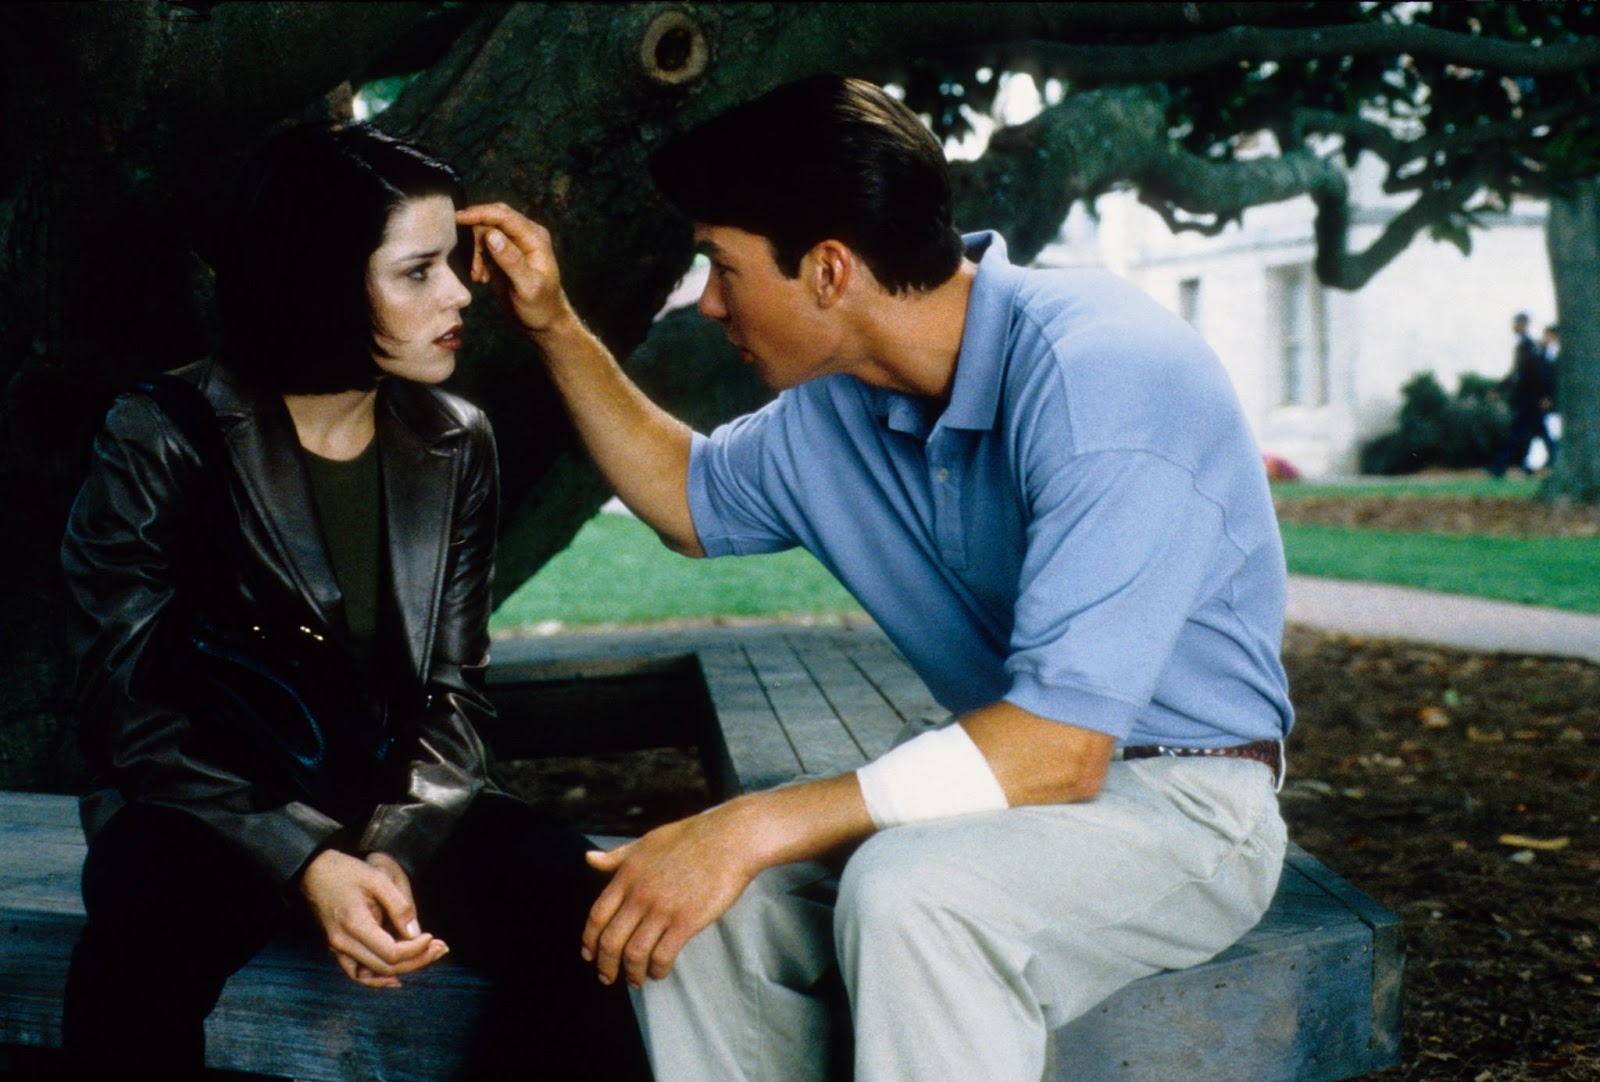 still-of-neve-campbell-and-jerry-oconnell-in-scream-2-(1997).jpg